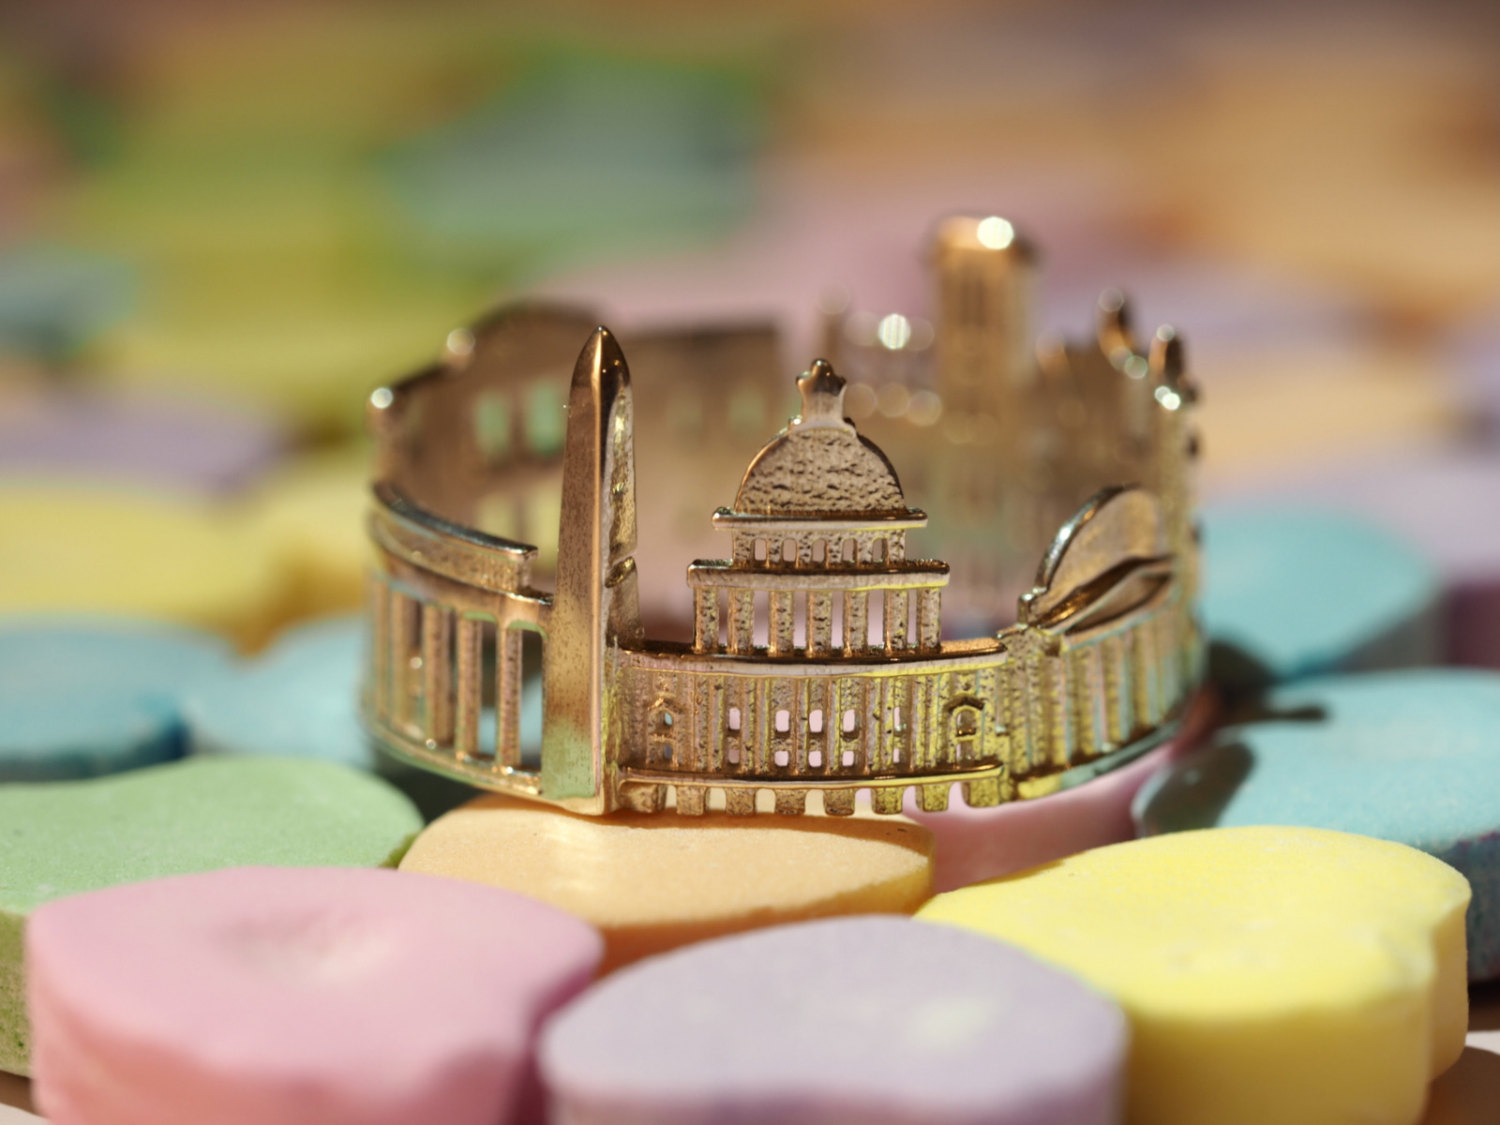 10-Washington-DC-Ola-Shekhtman-Memories-contained-in-Architectural-Cityscape-Skyline-Rings-www-designstack-co